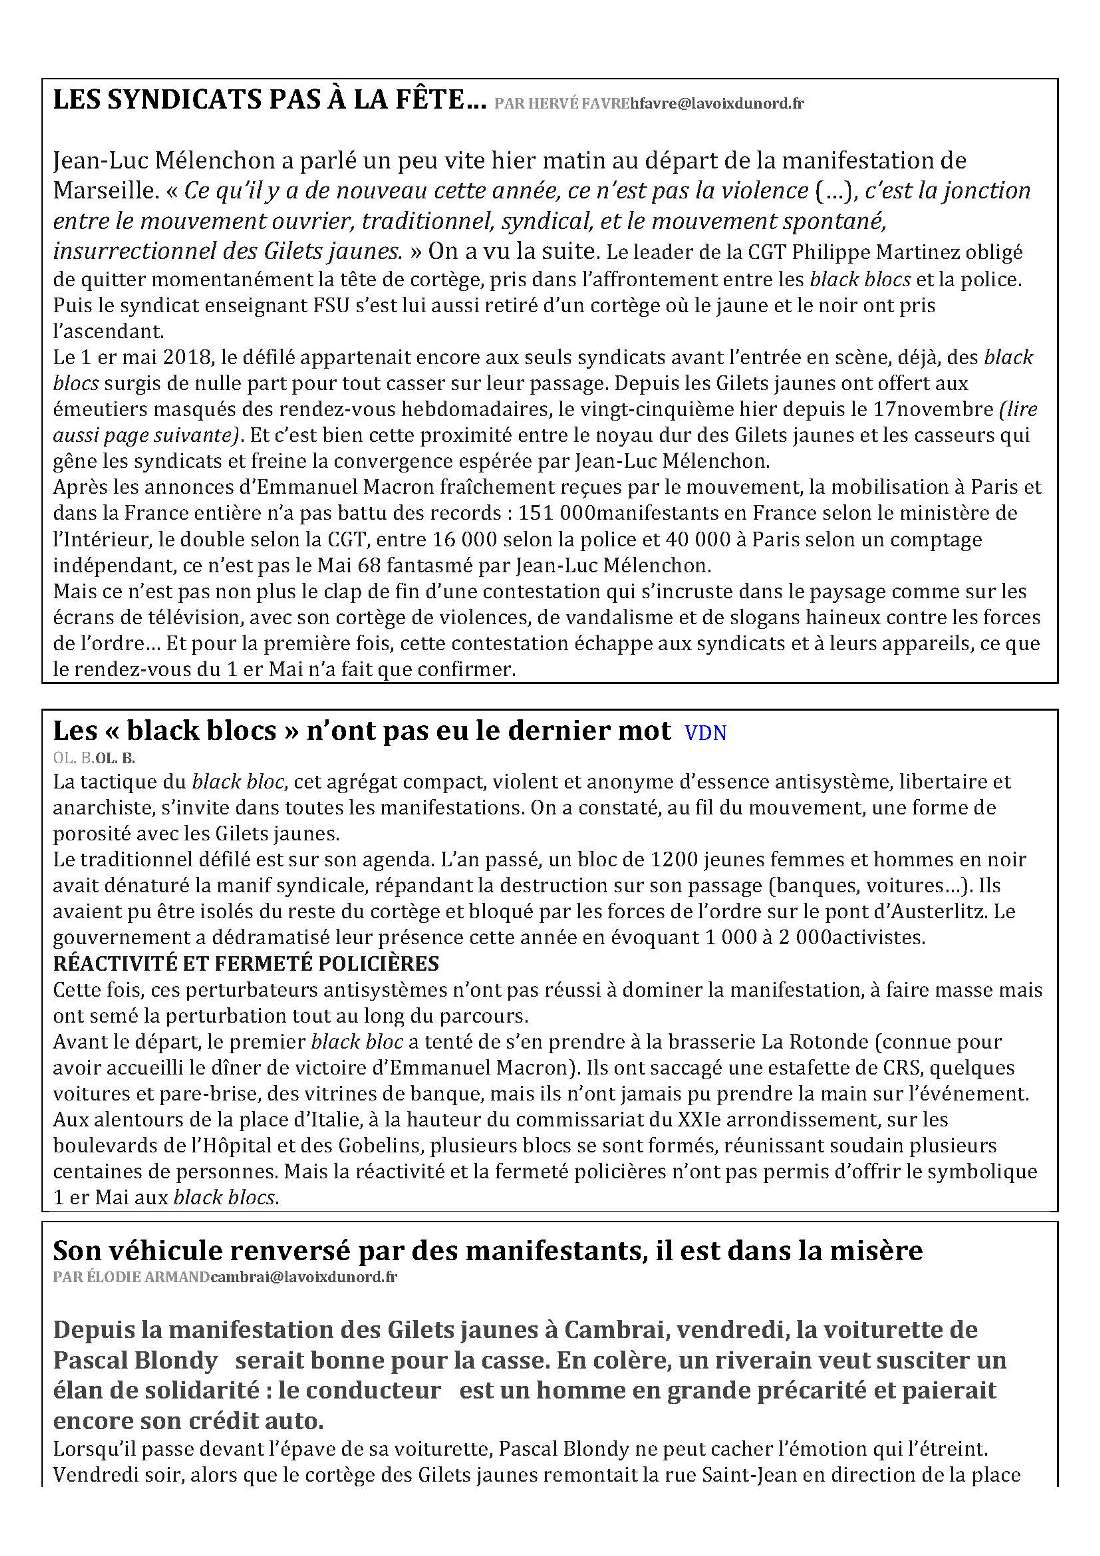 article_Page_1